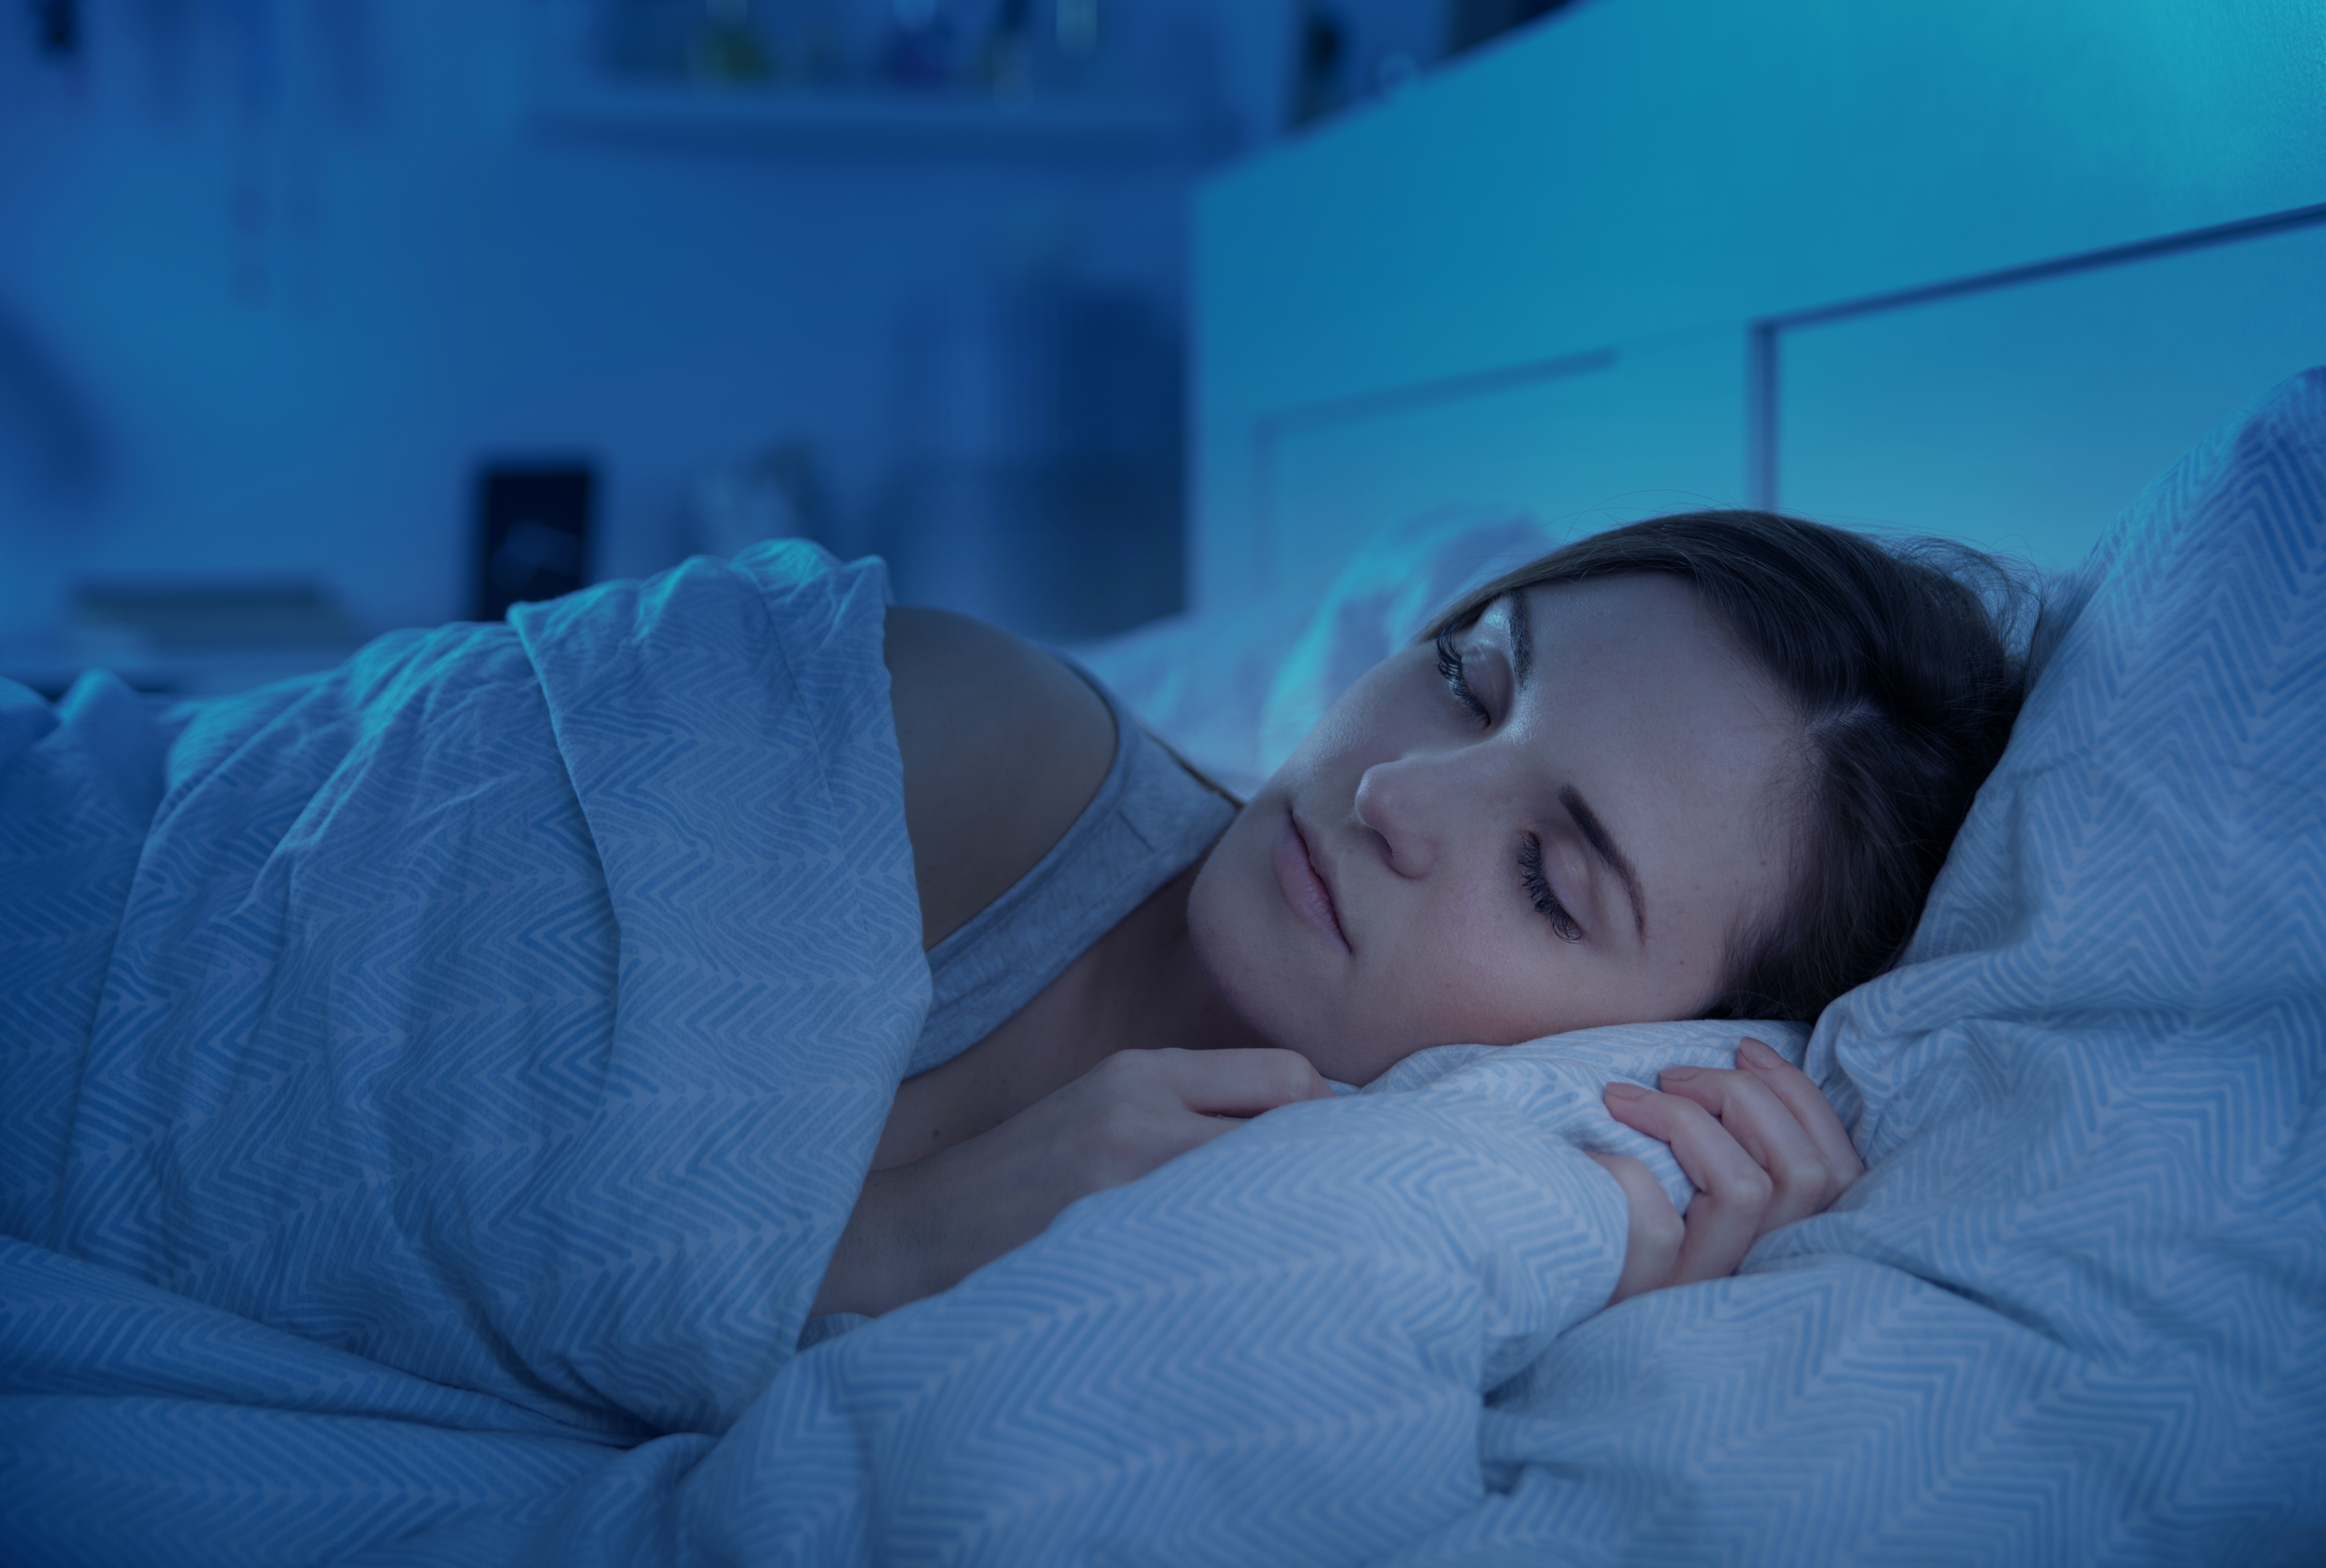 A Self-Administered Sleep Intervention for Patients With Cancer Experiencing Insomnia